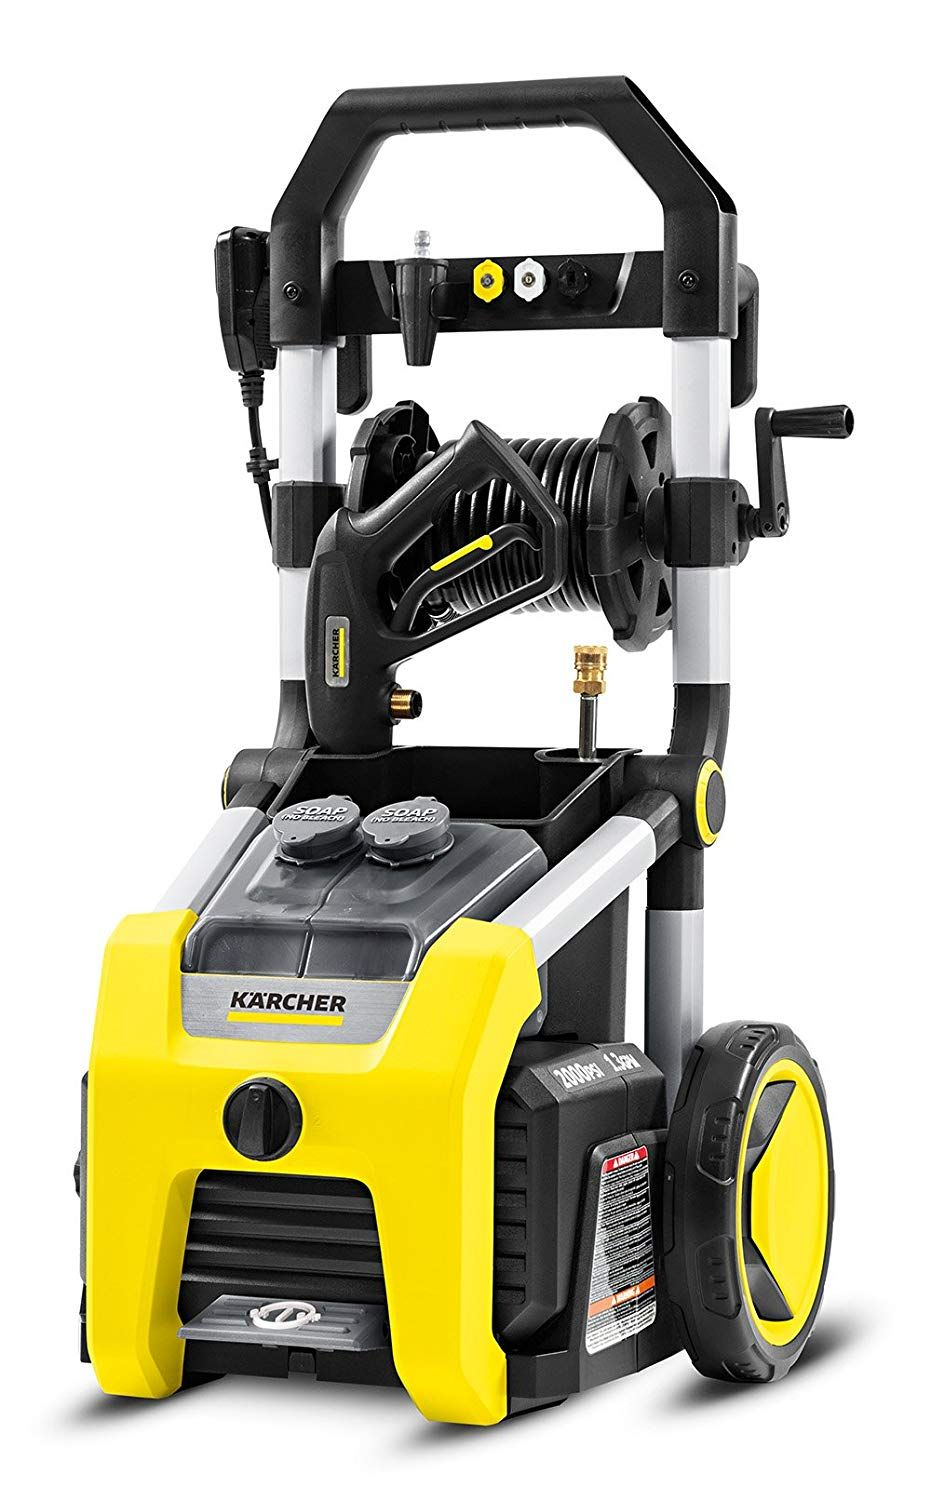 Karcher K2000 Electric Power Pressure Washer Review | Best